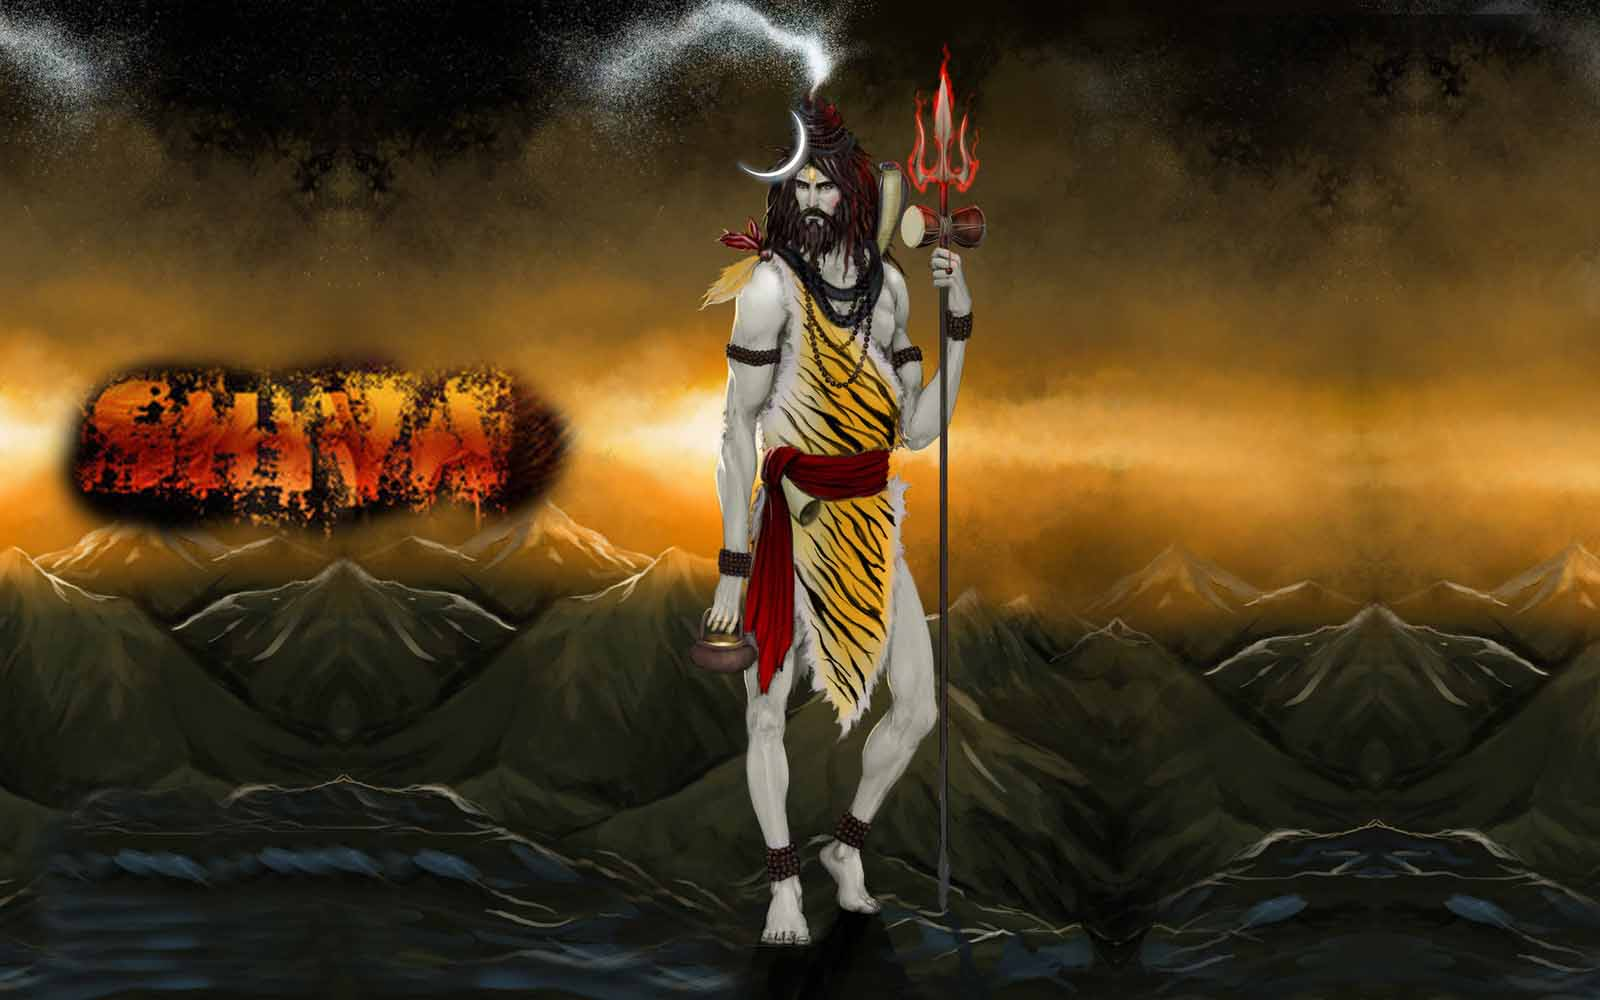 Lord Shiva 3d Live Wallpaper For Android Download Trishul Wallpaper Download Gallery